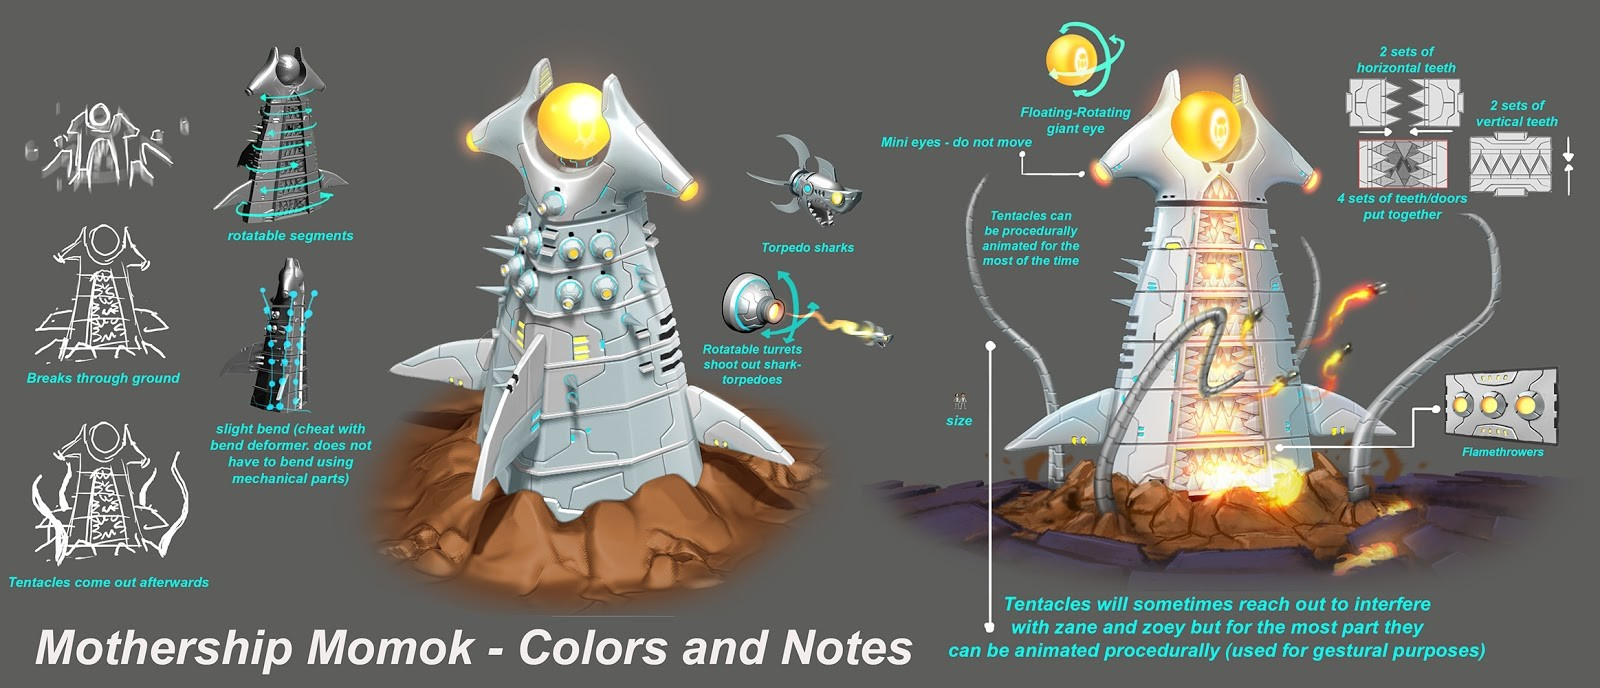 Jose cua mothership momok colors and notes